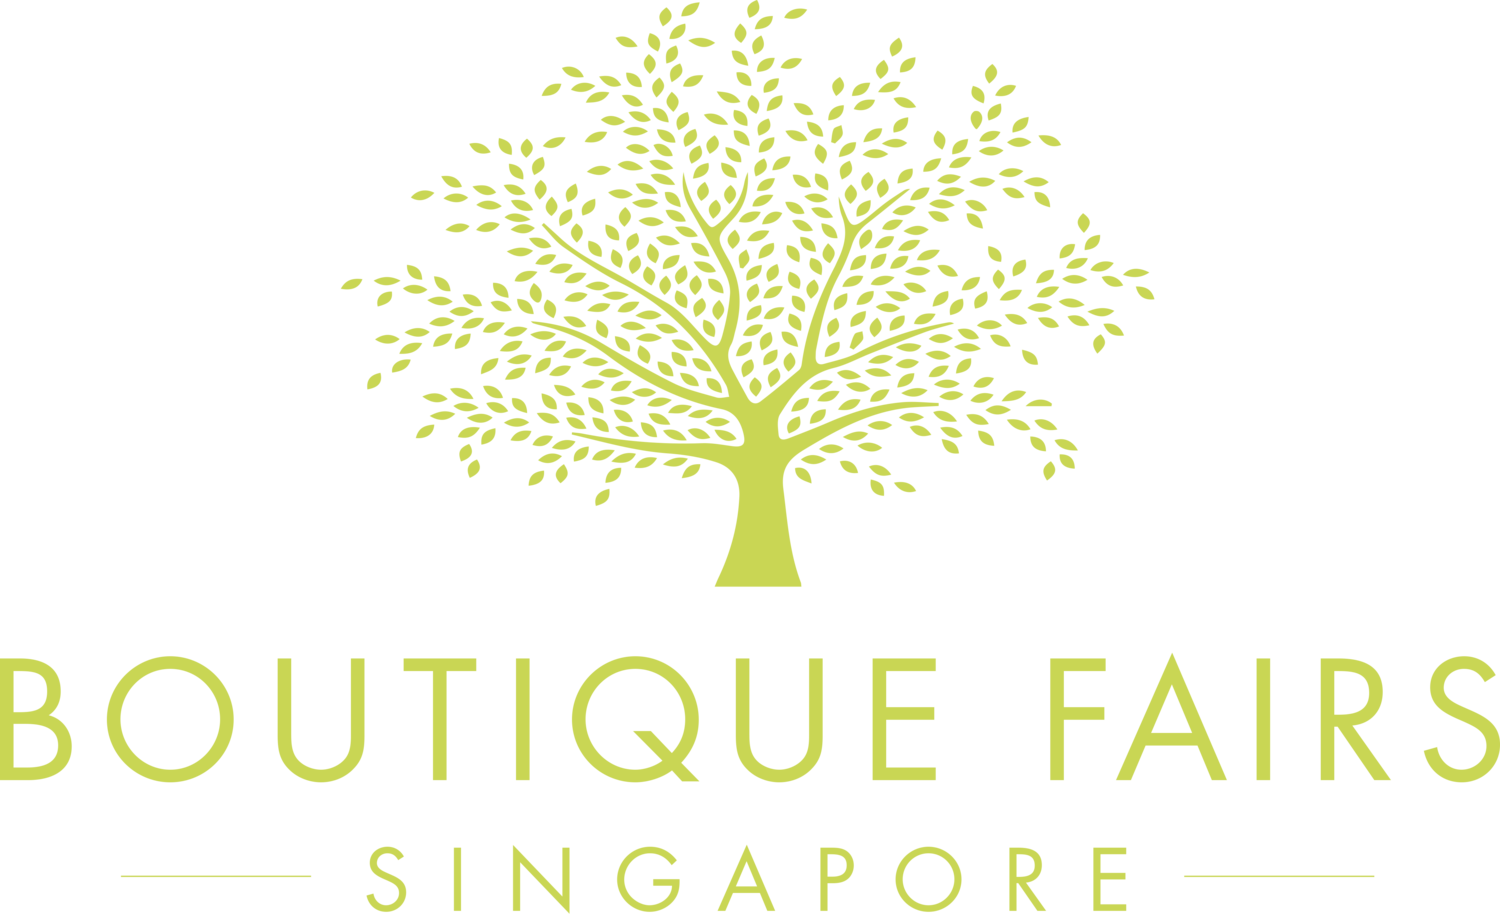 Boutique Fairs Singapore